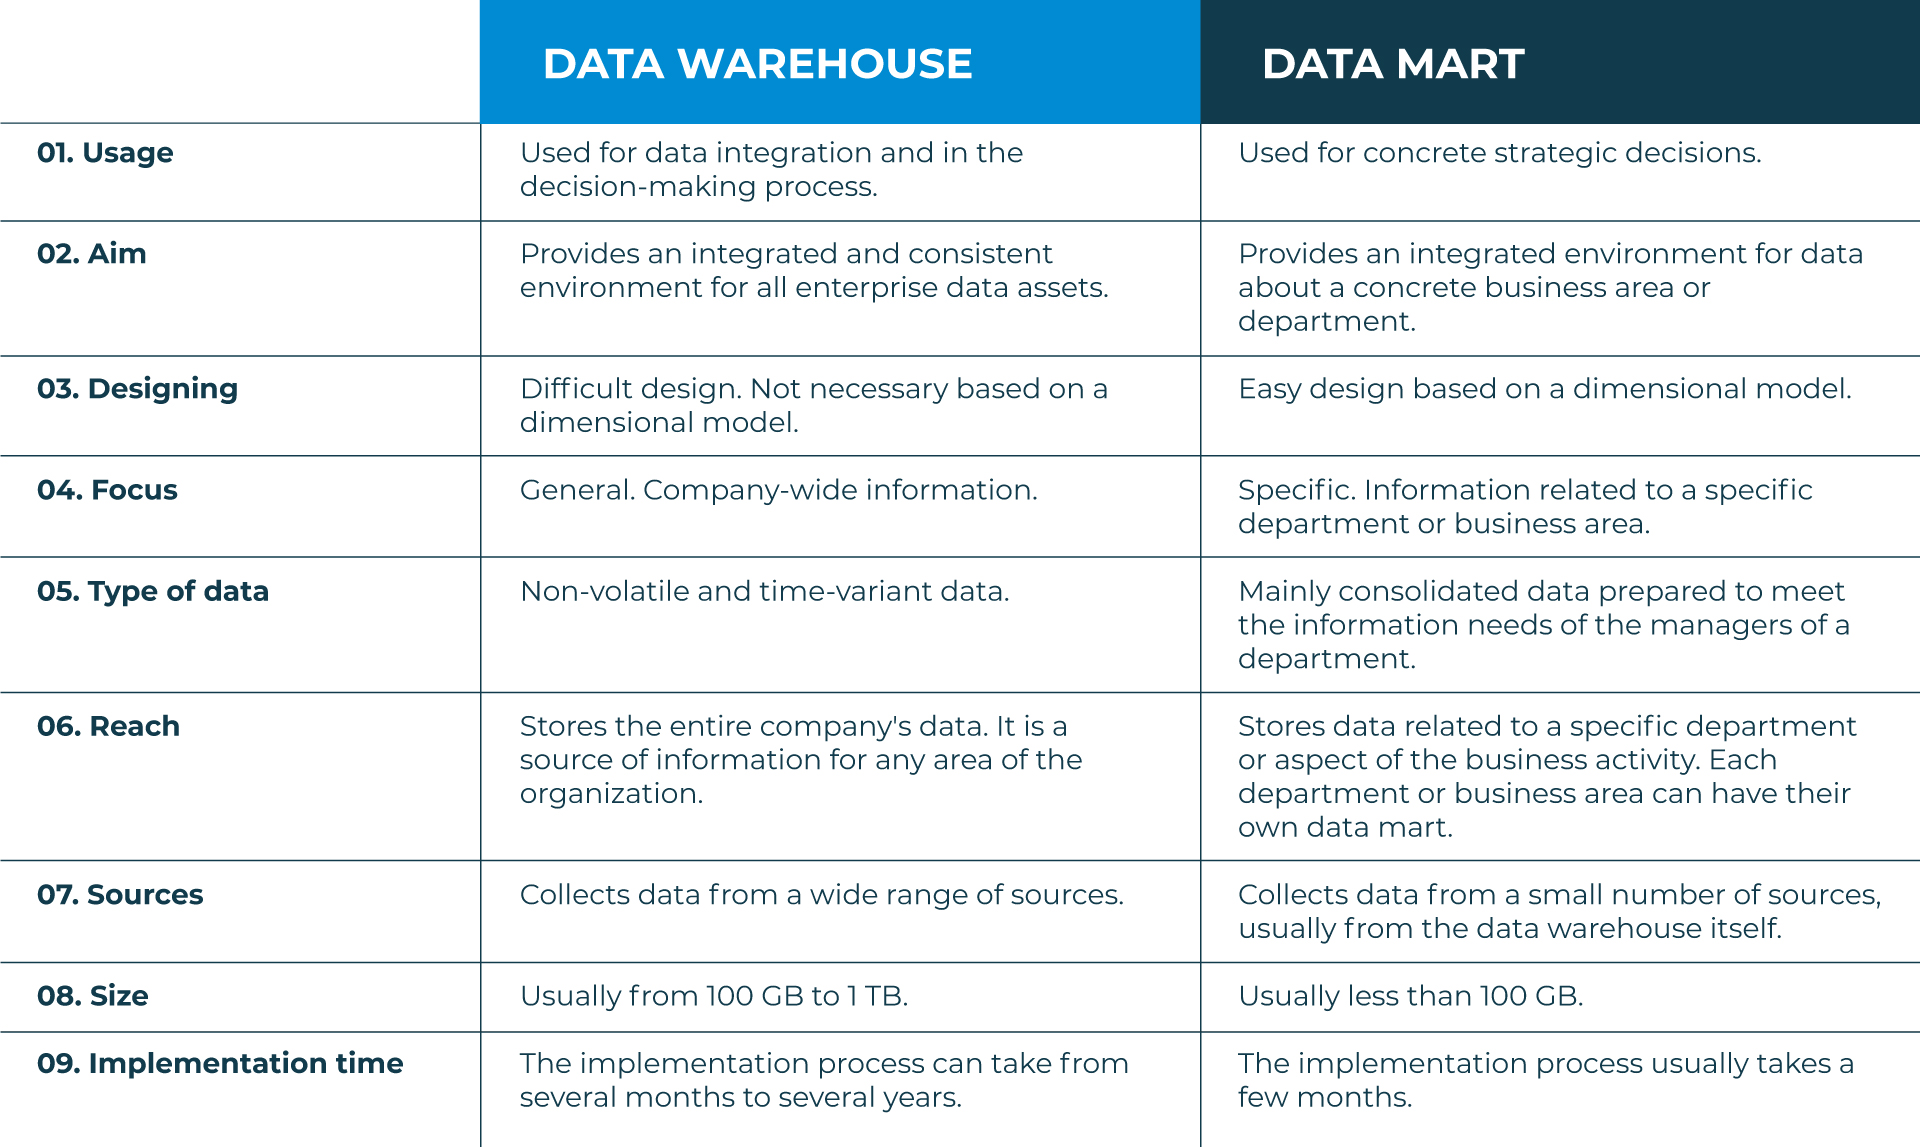 Data-Warehouse-vs-Data-Mart-EN